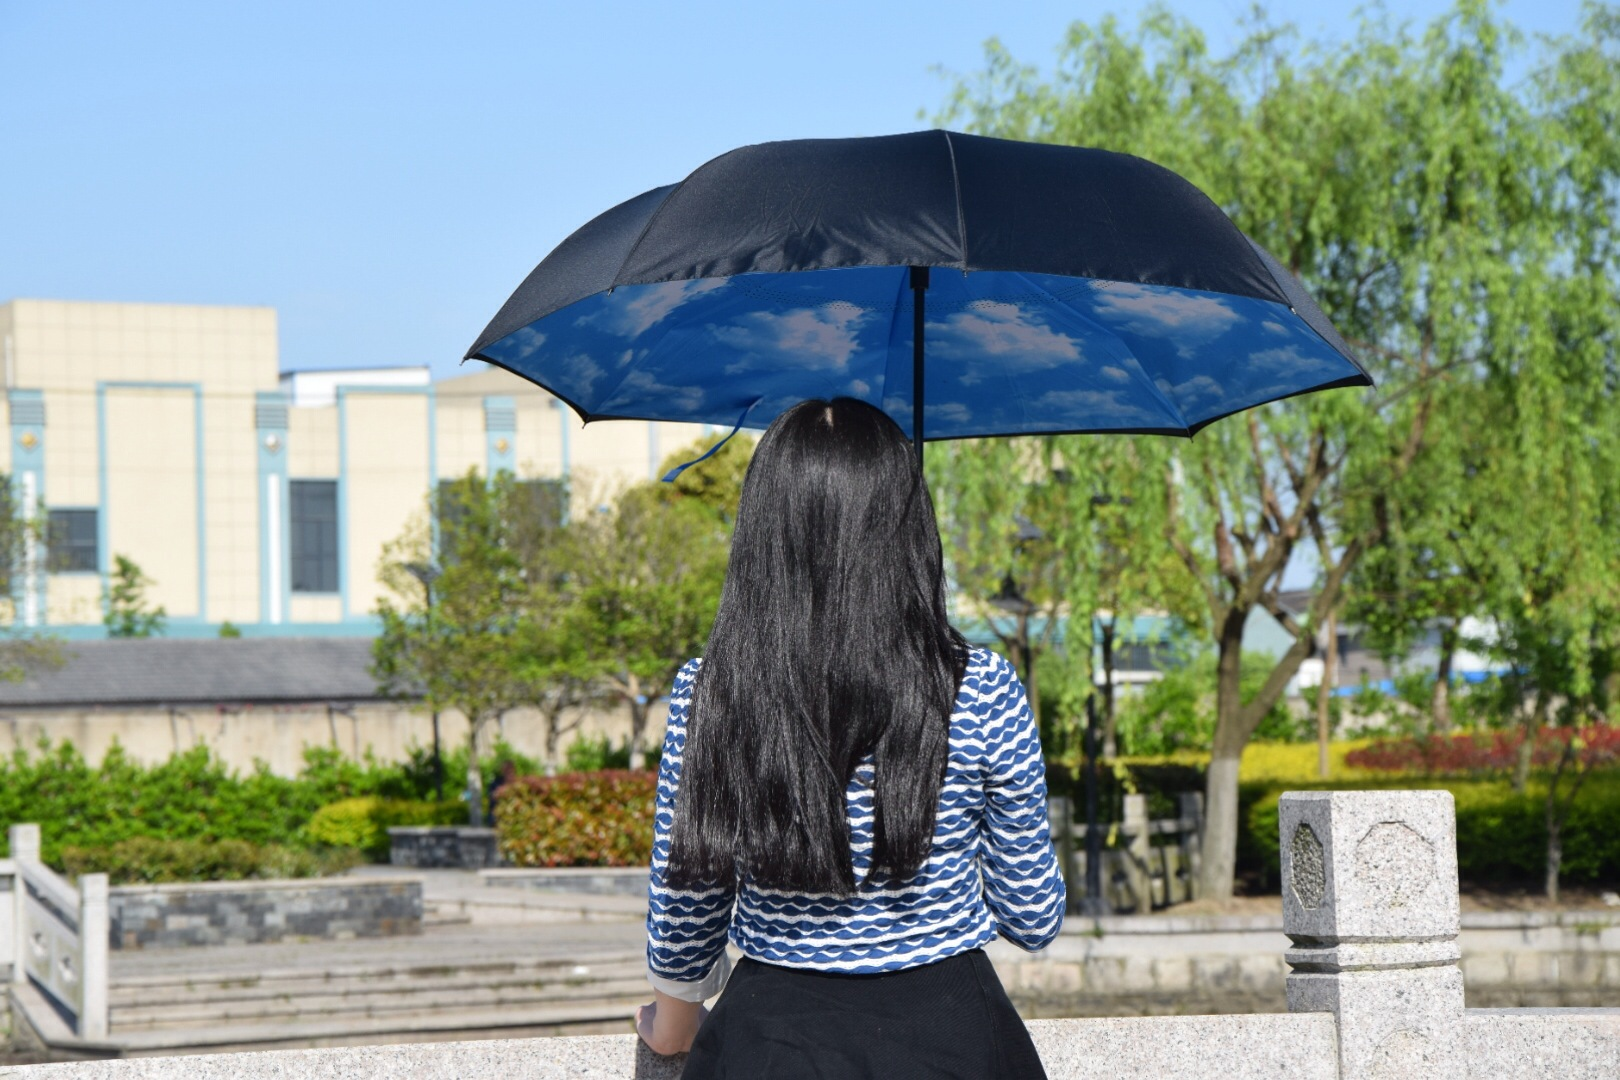 d610e2217a C-Hook Windproof Reverse umbrella Long Shank Inverted Double Layer Creative  Self Stand Rain Protection Umbrella Drop Shipping - us592